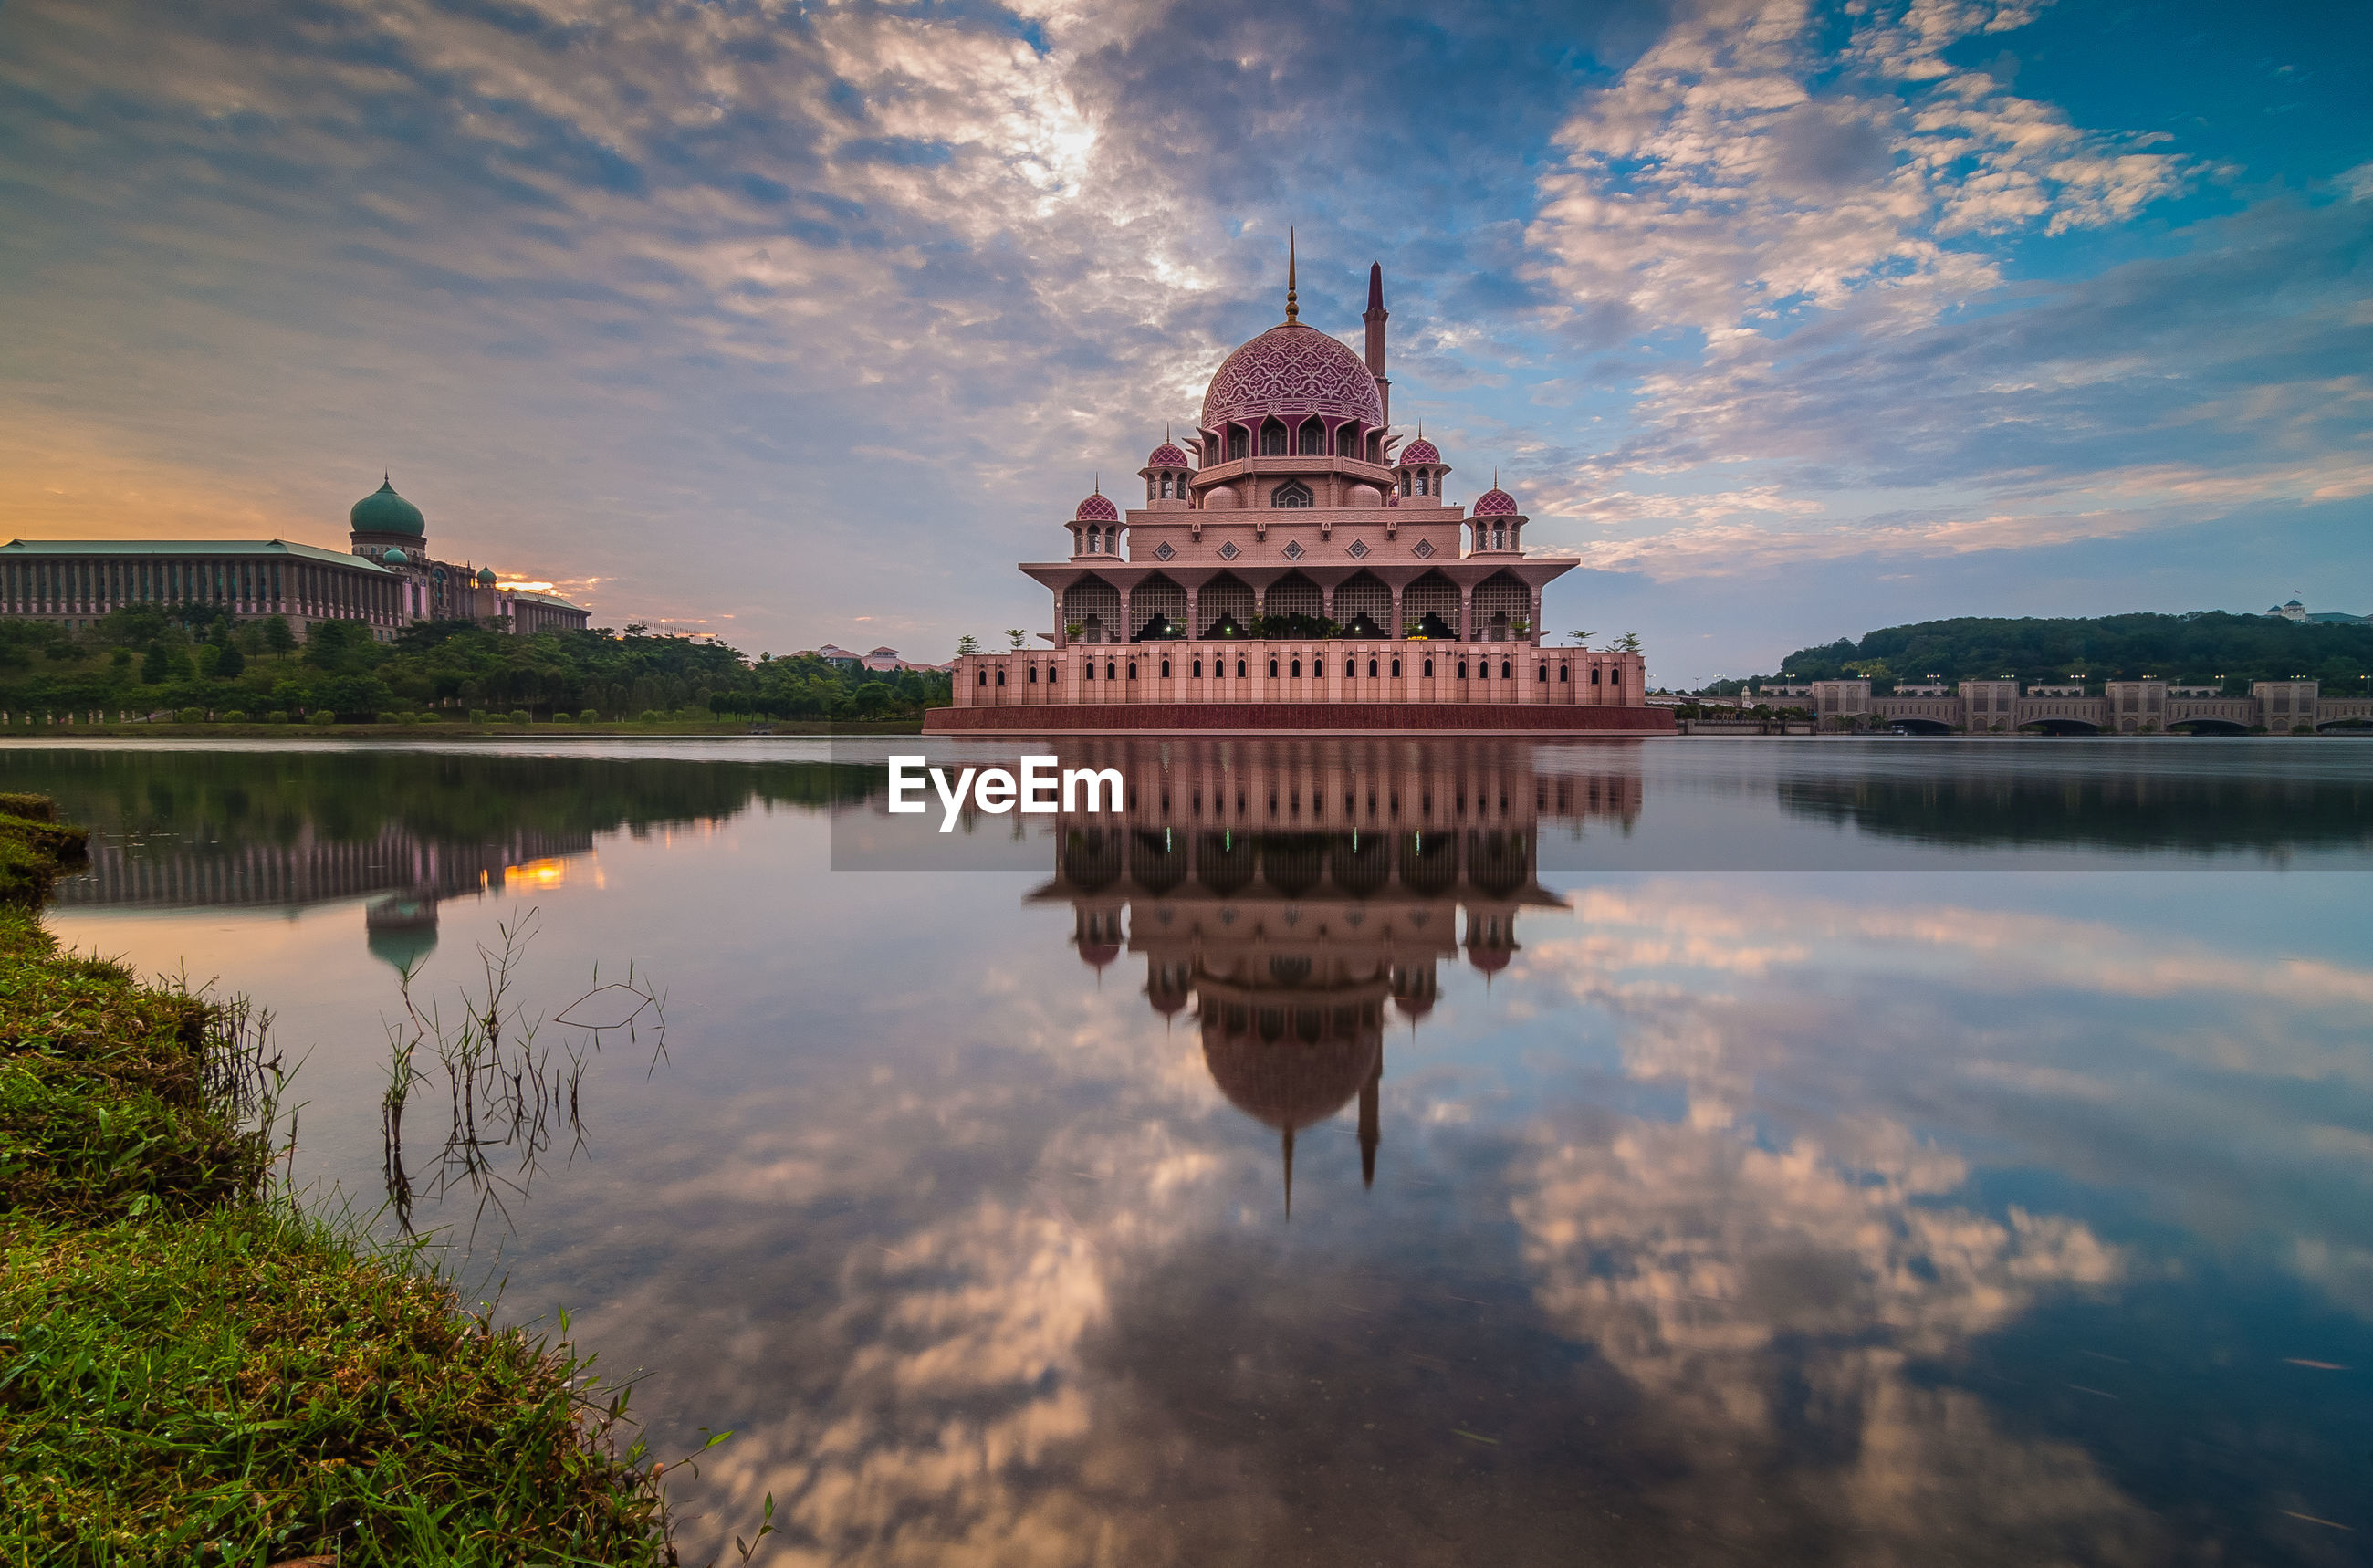 Putra mosque with reflection in lake against sky